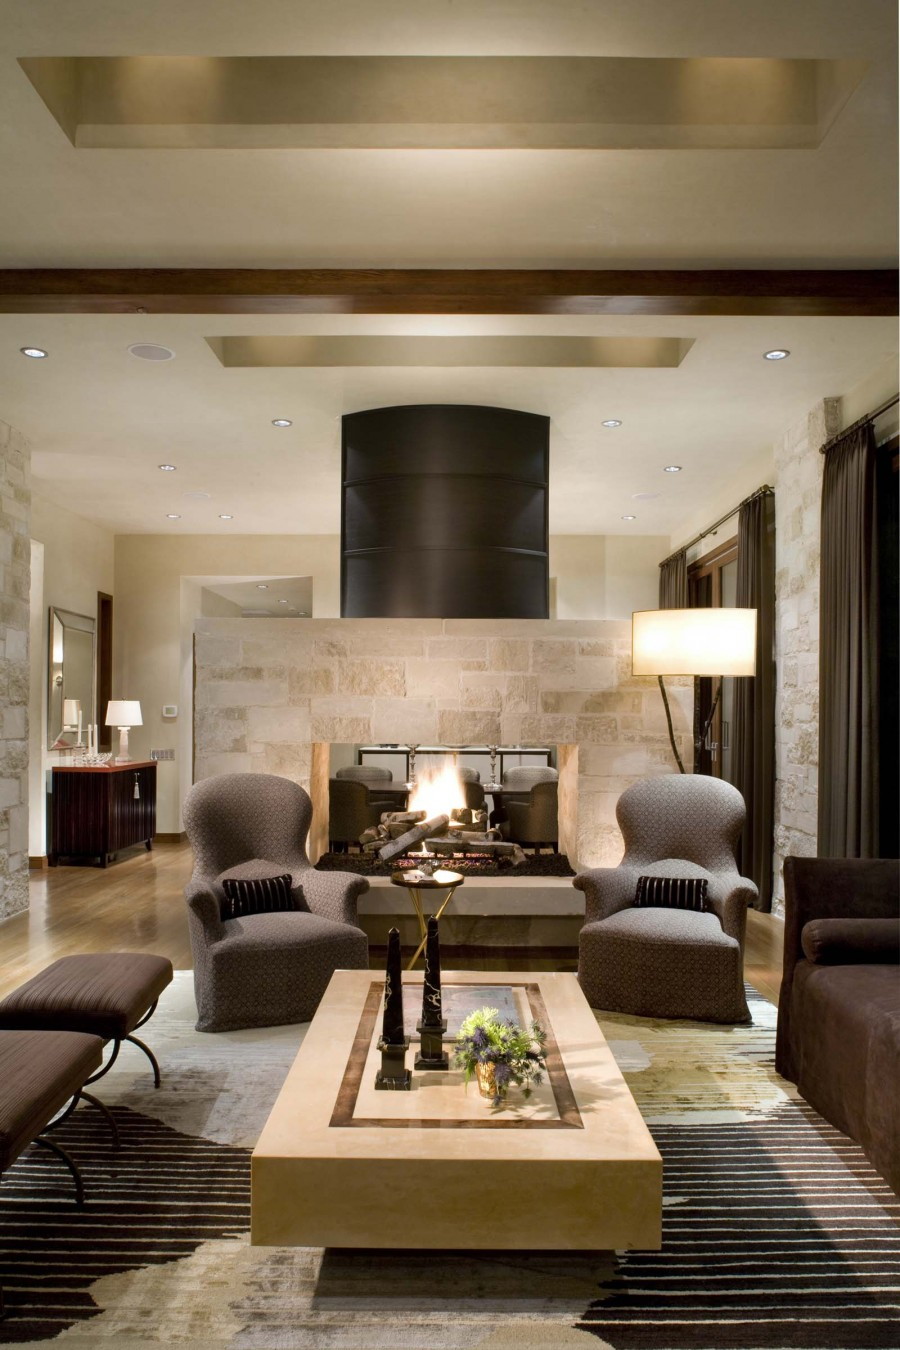 16 fabulous earth tones living room designs decoholic for Modern interior design ideas living room